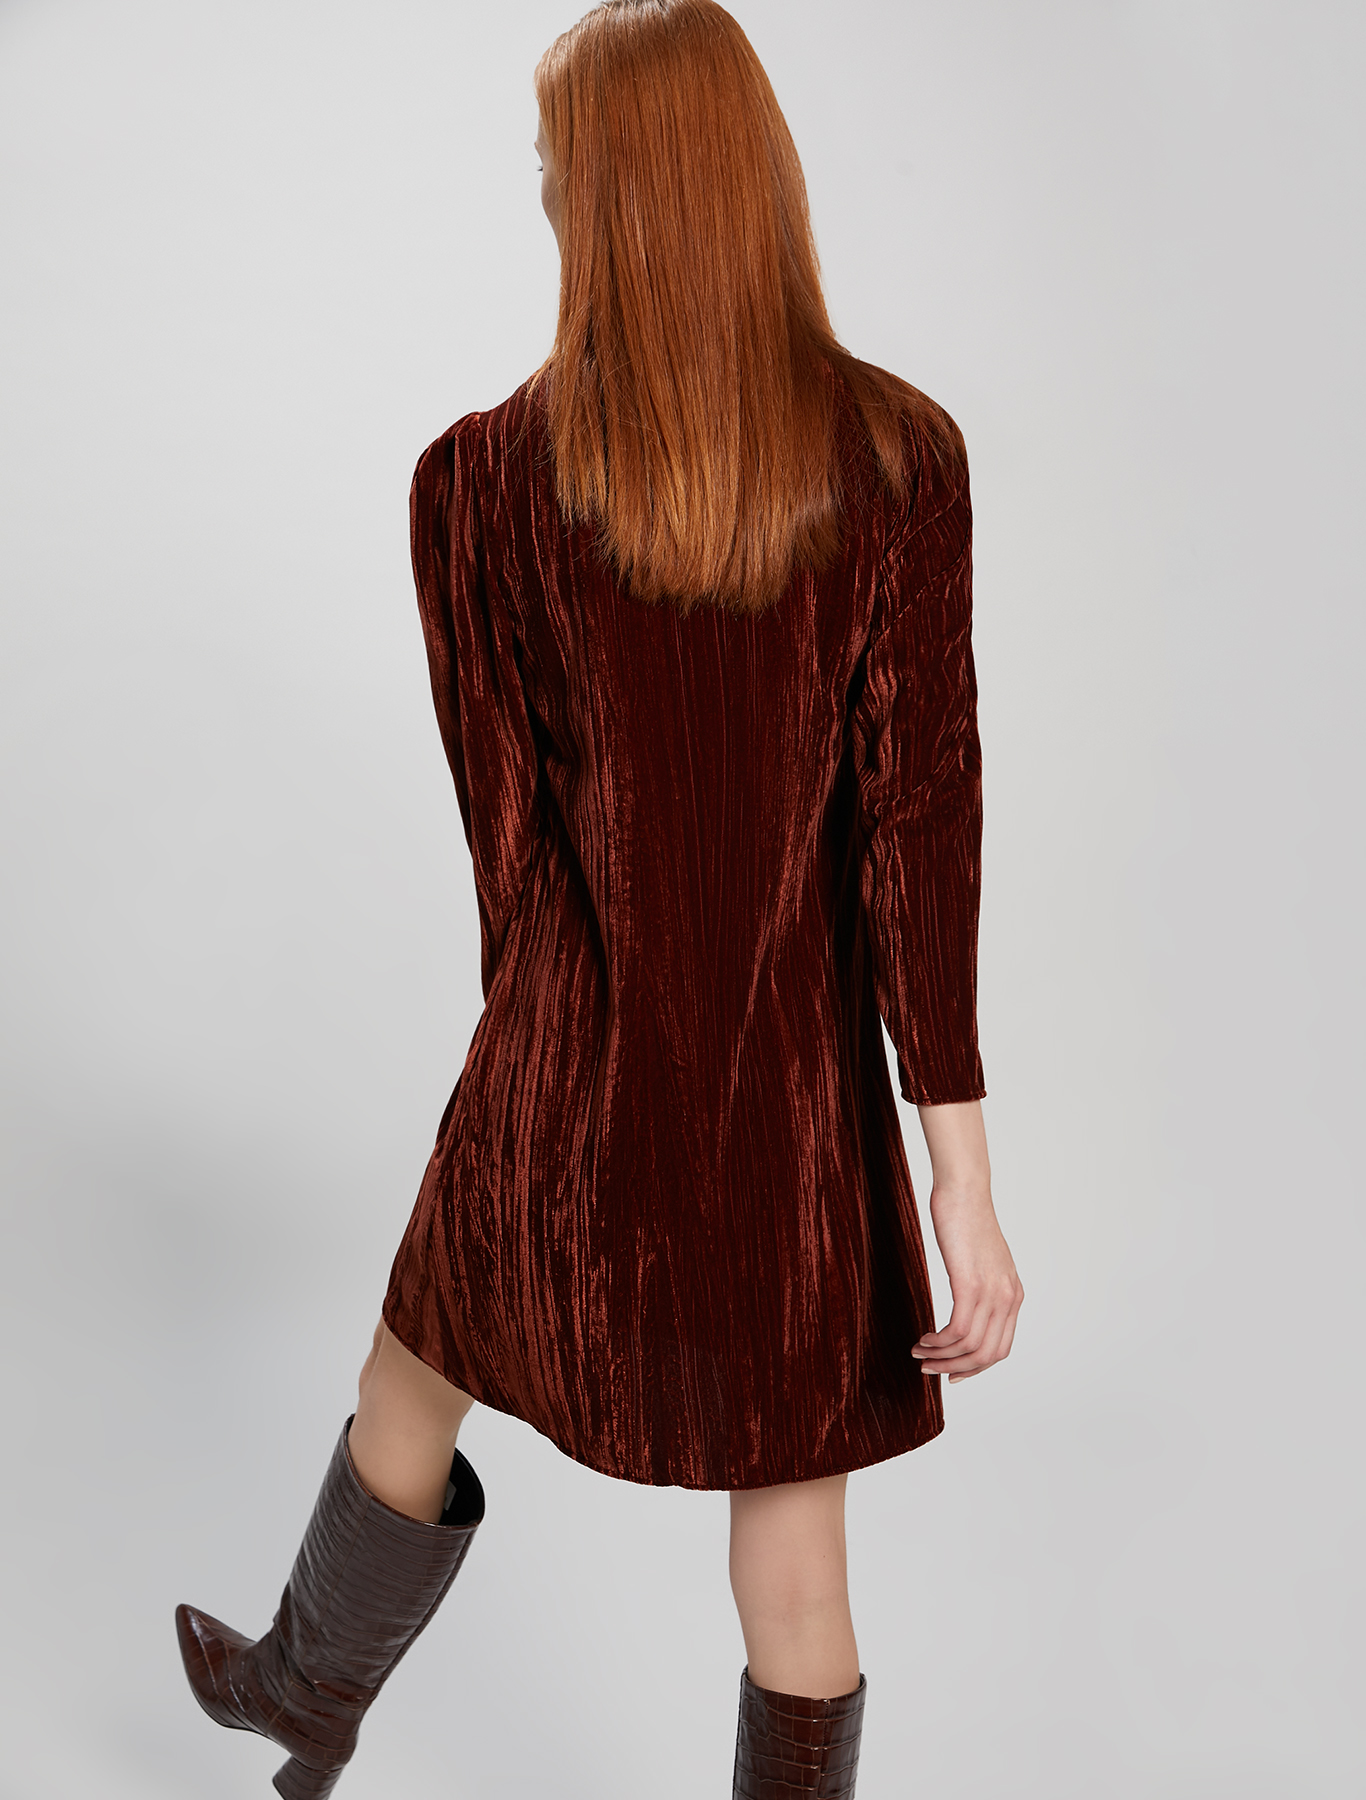 3D velvet dress - cocoa - pennyblack